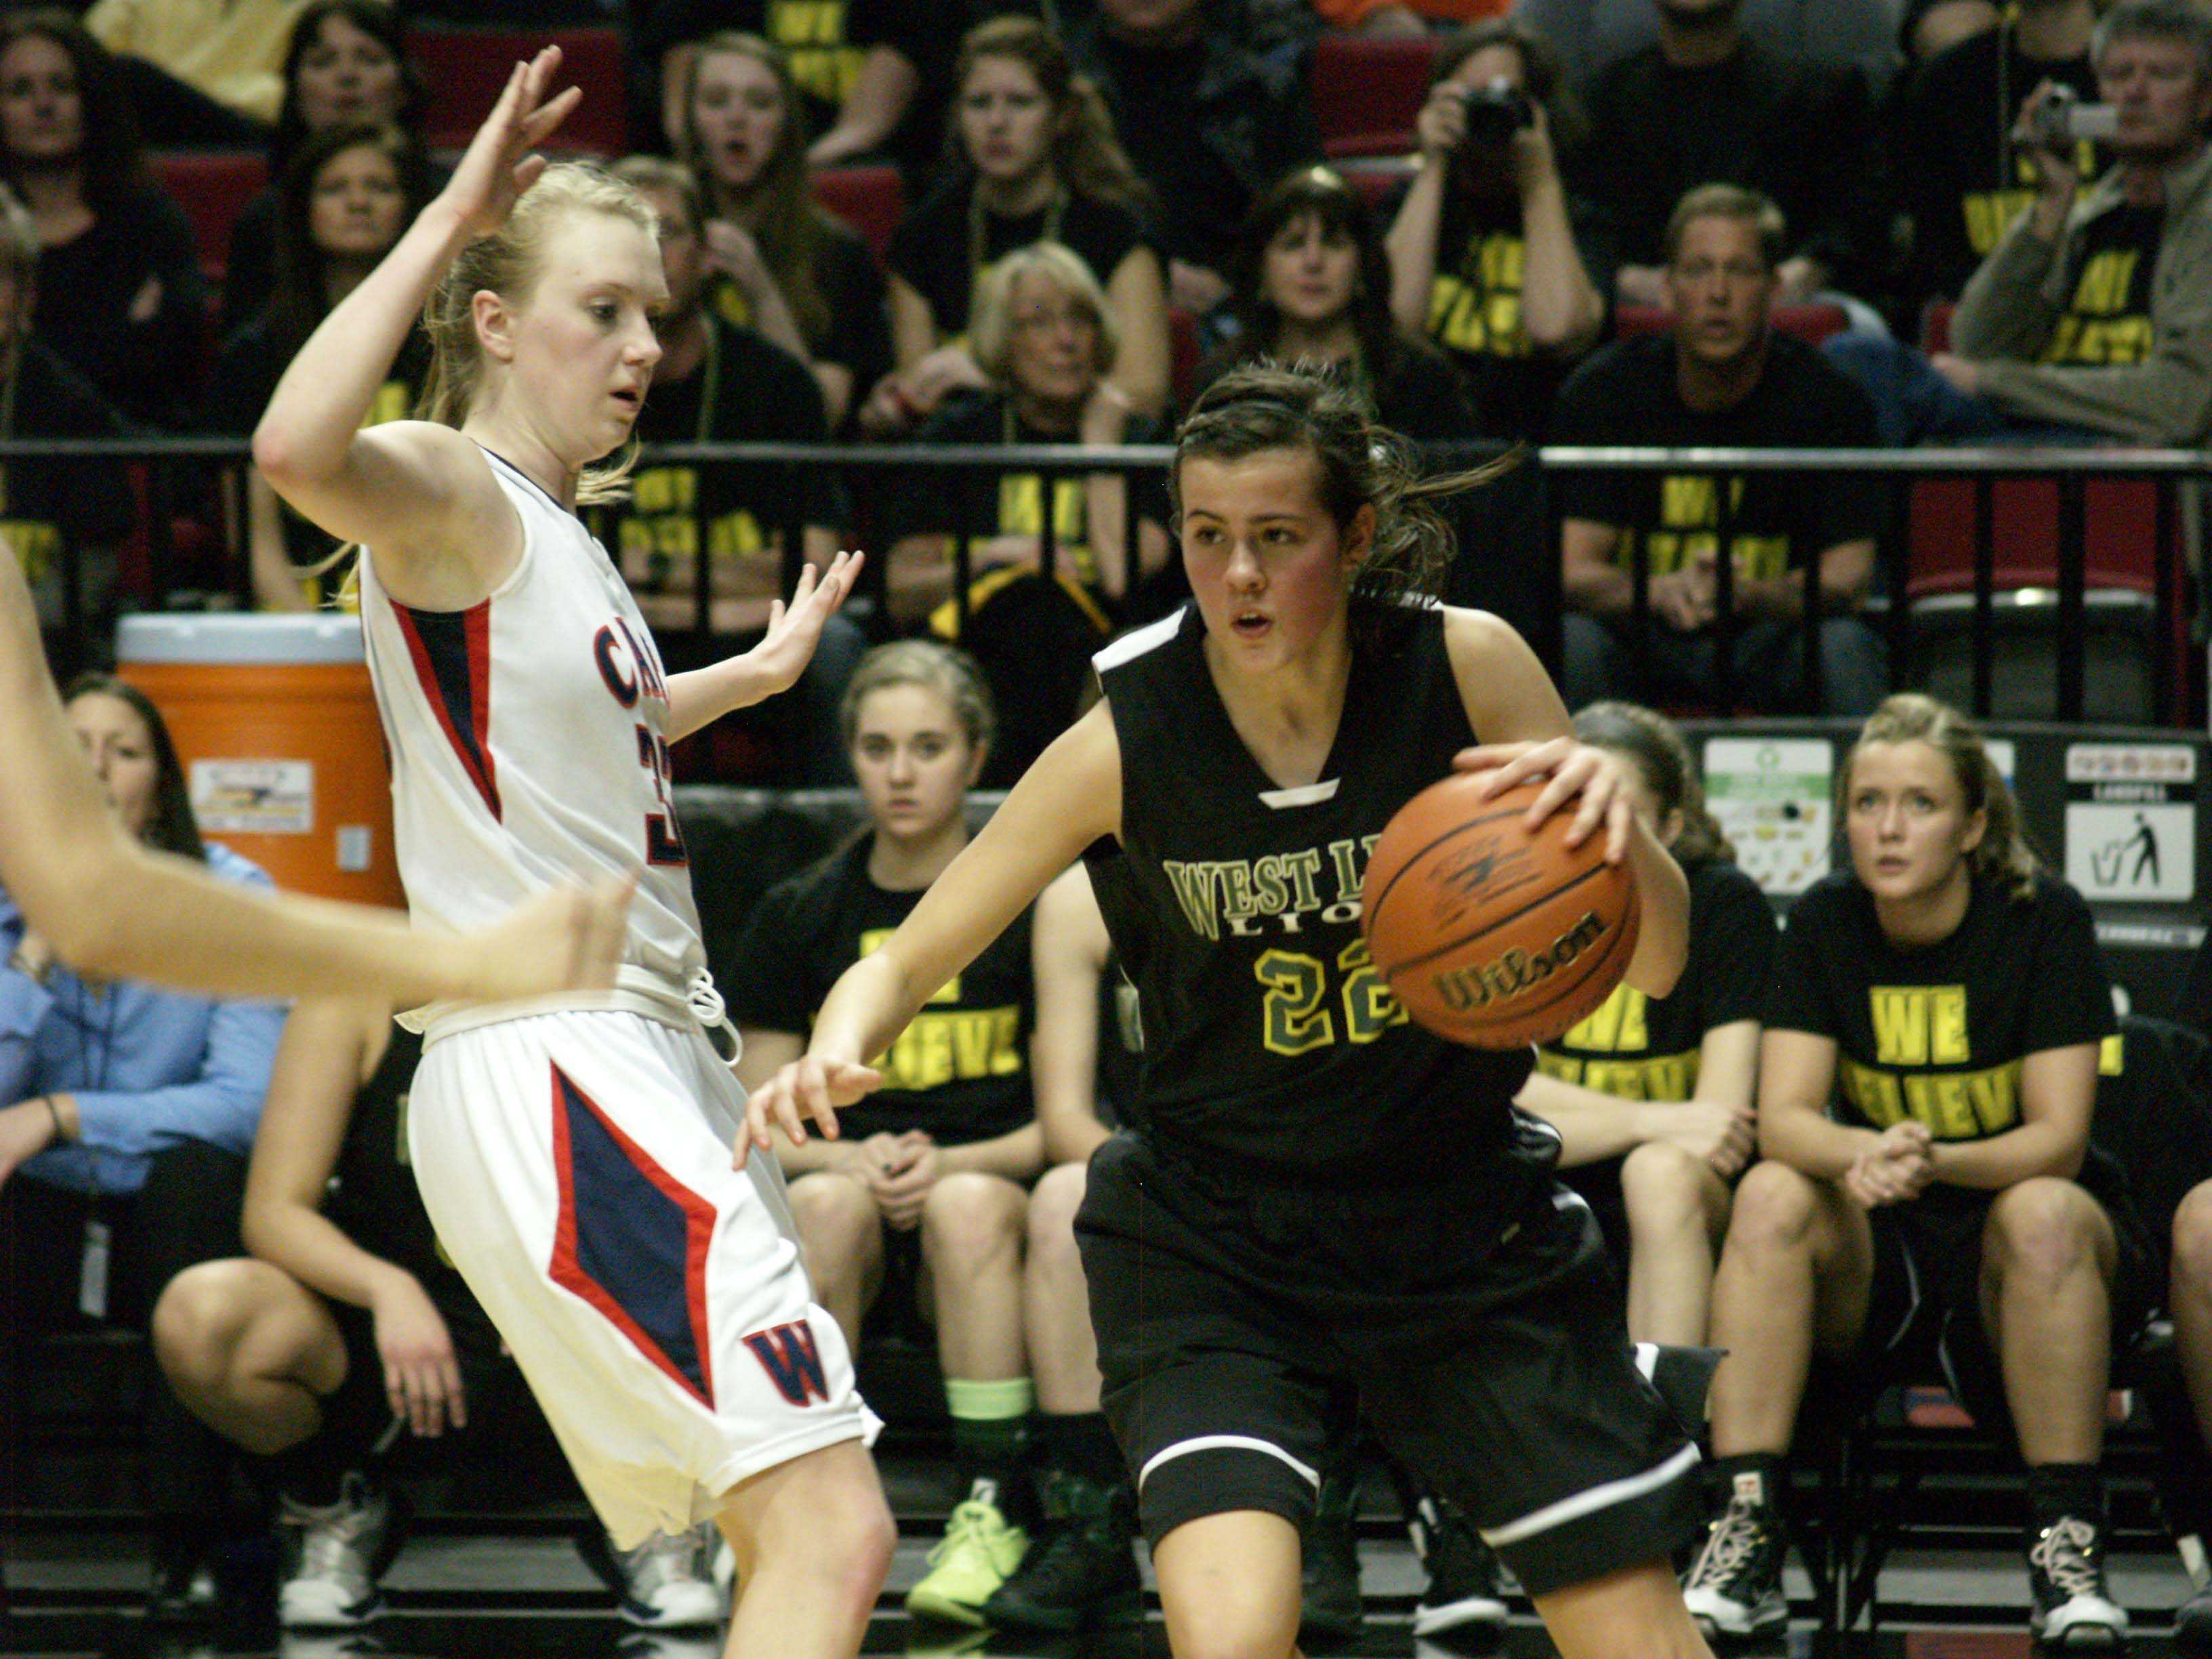 West Linn Girls basketball team places fifth in State playoffs